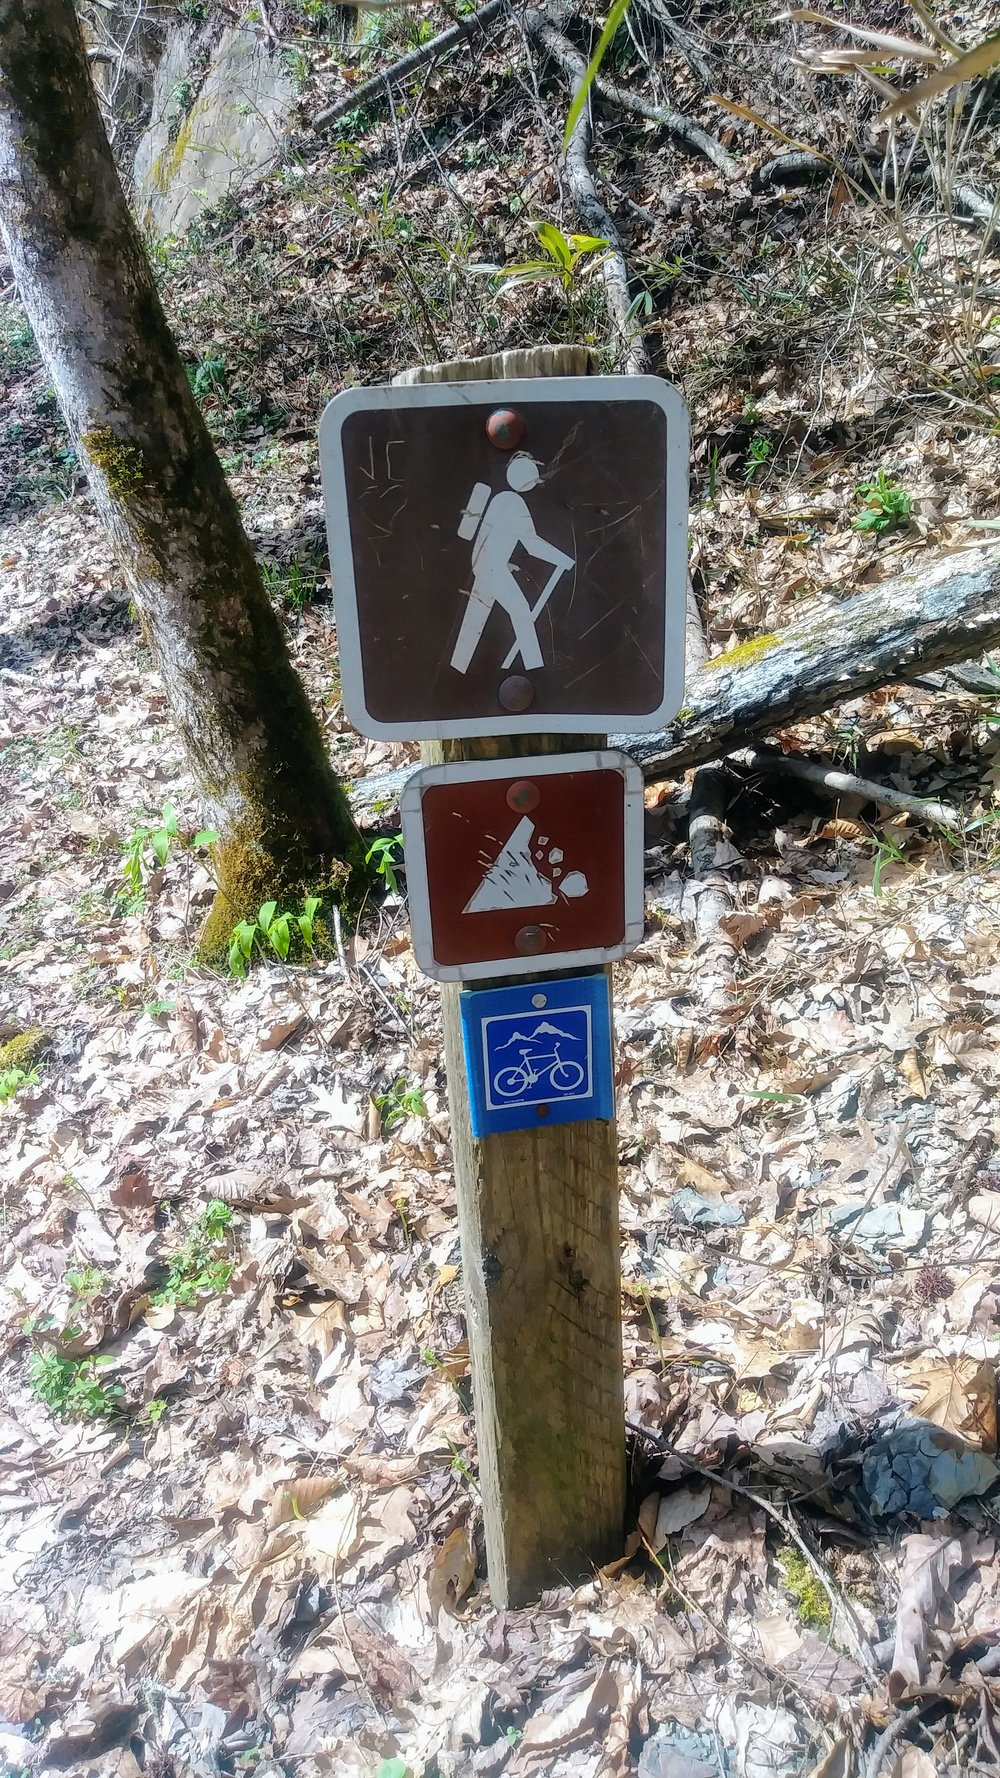 Open to hikers and bikers, but beware of falling rocks